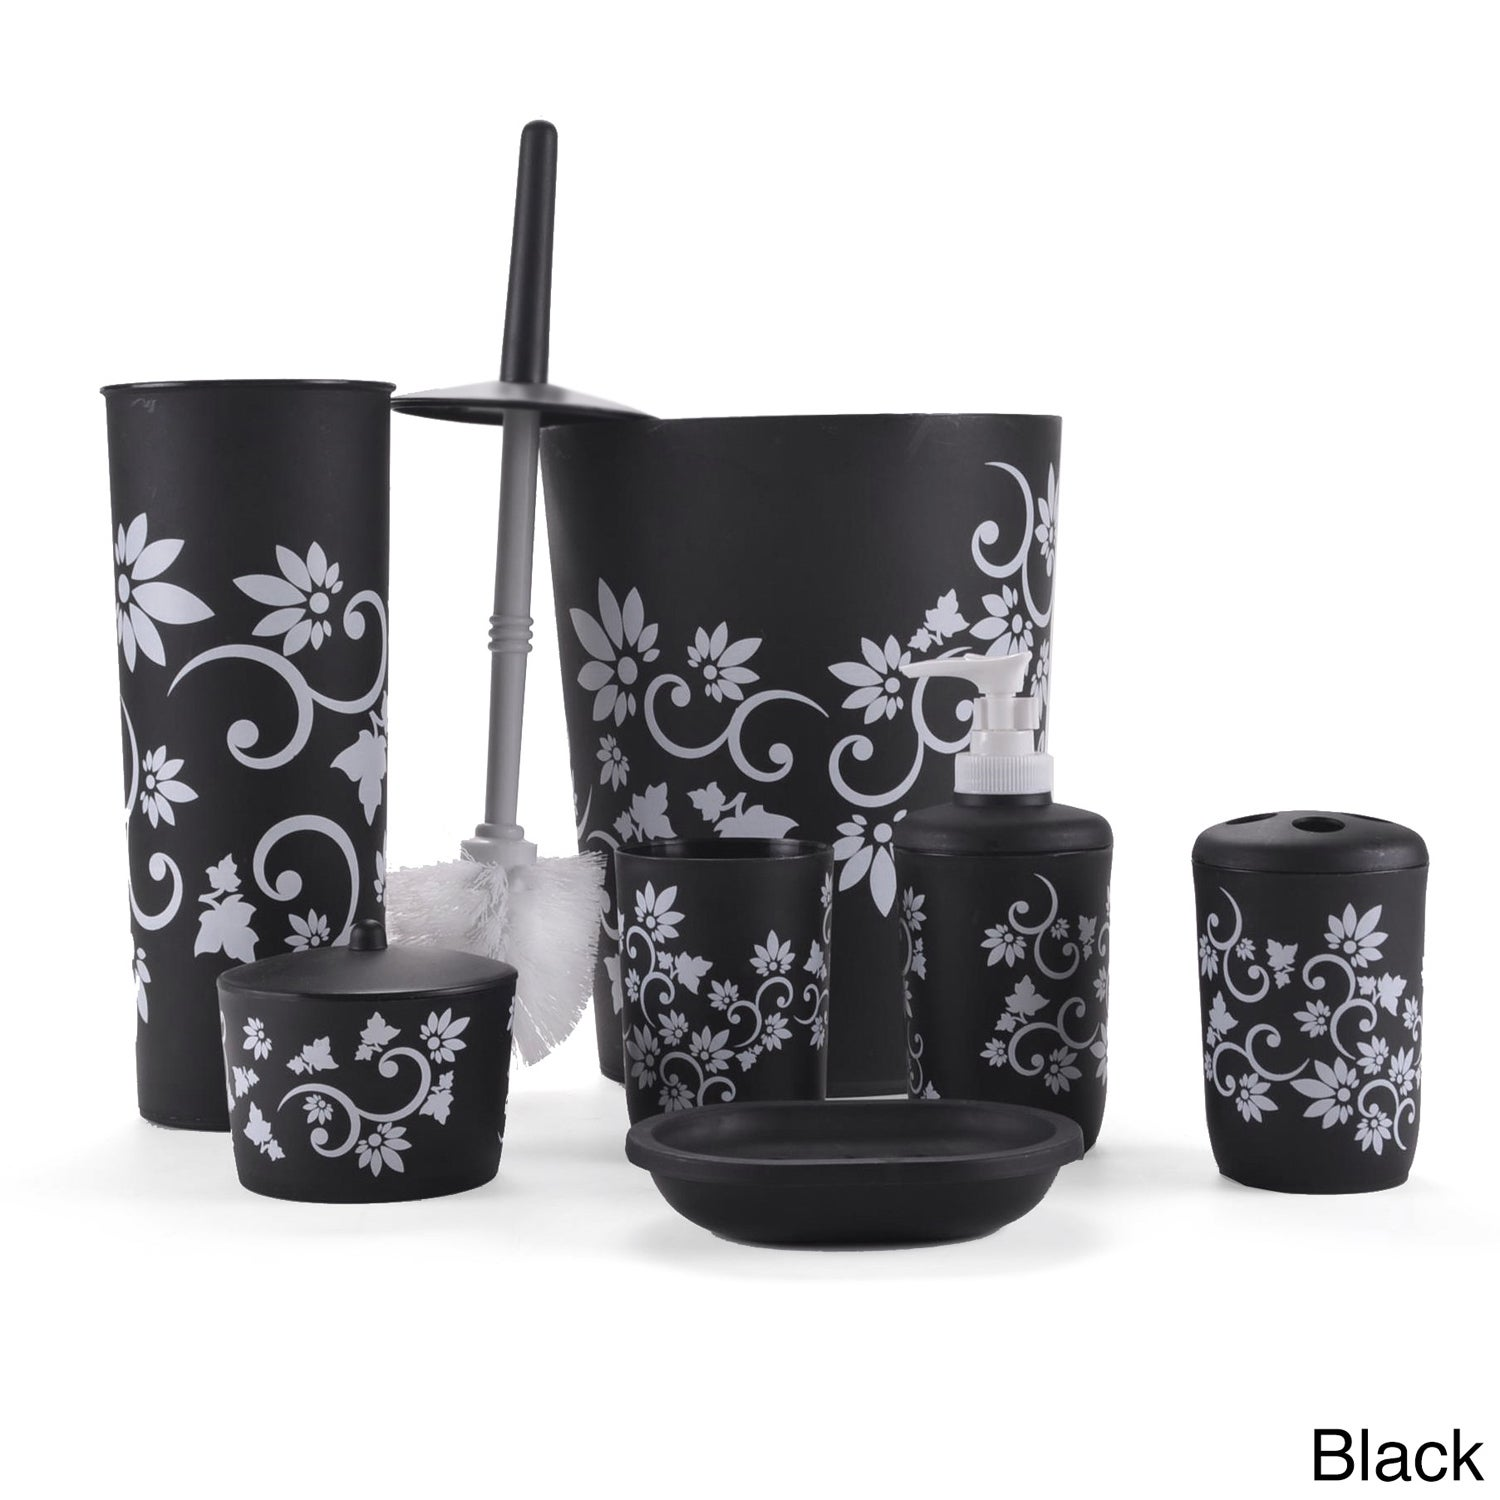 Floral 7 Piece Bath Accessory Set Overstock Shopping